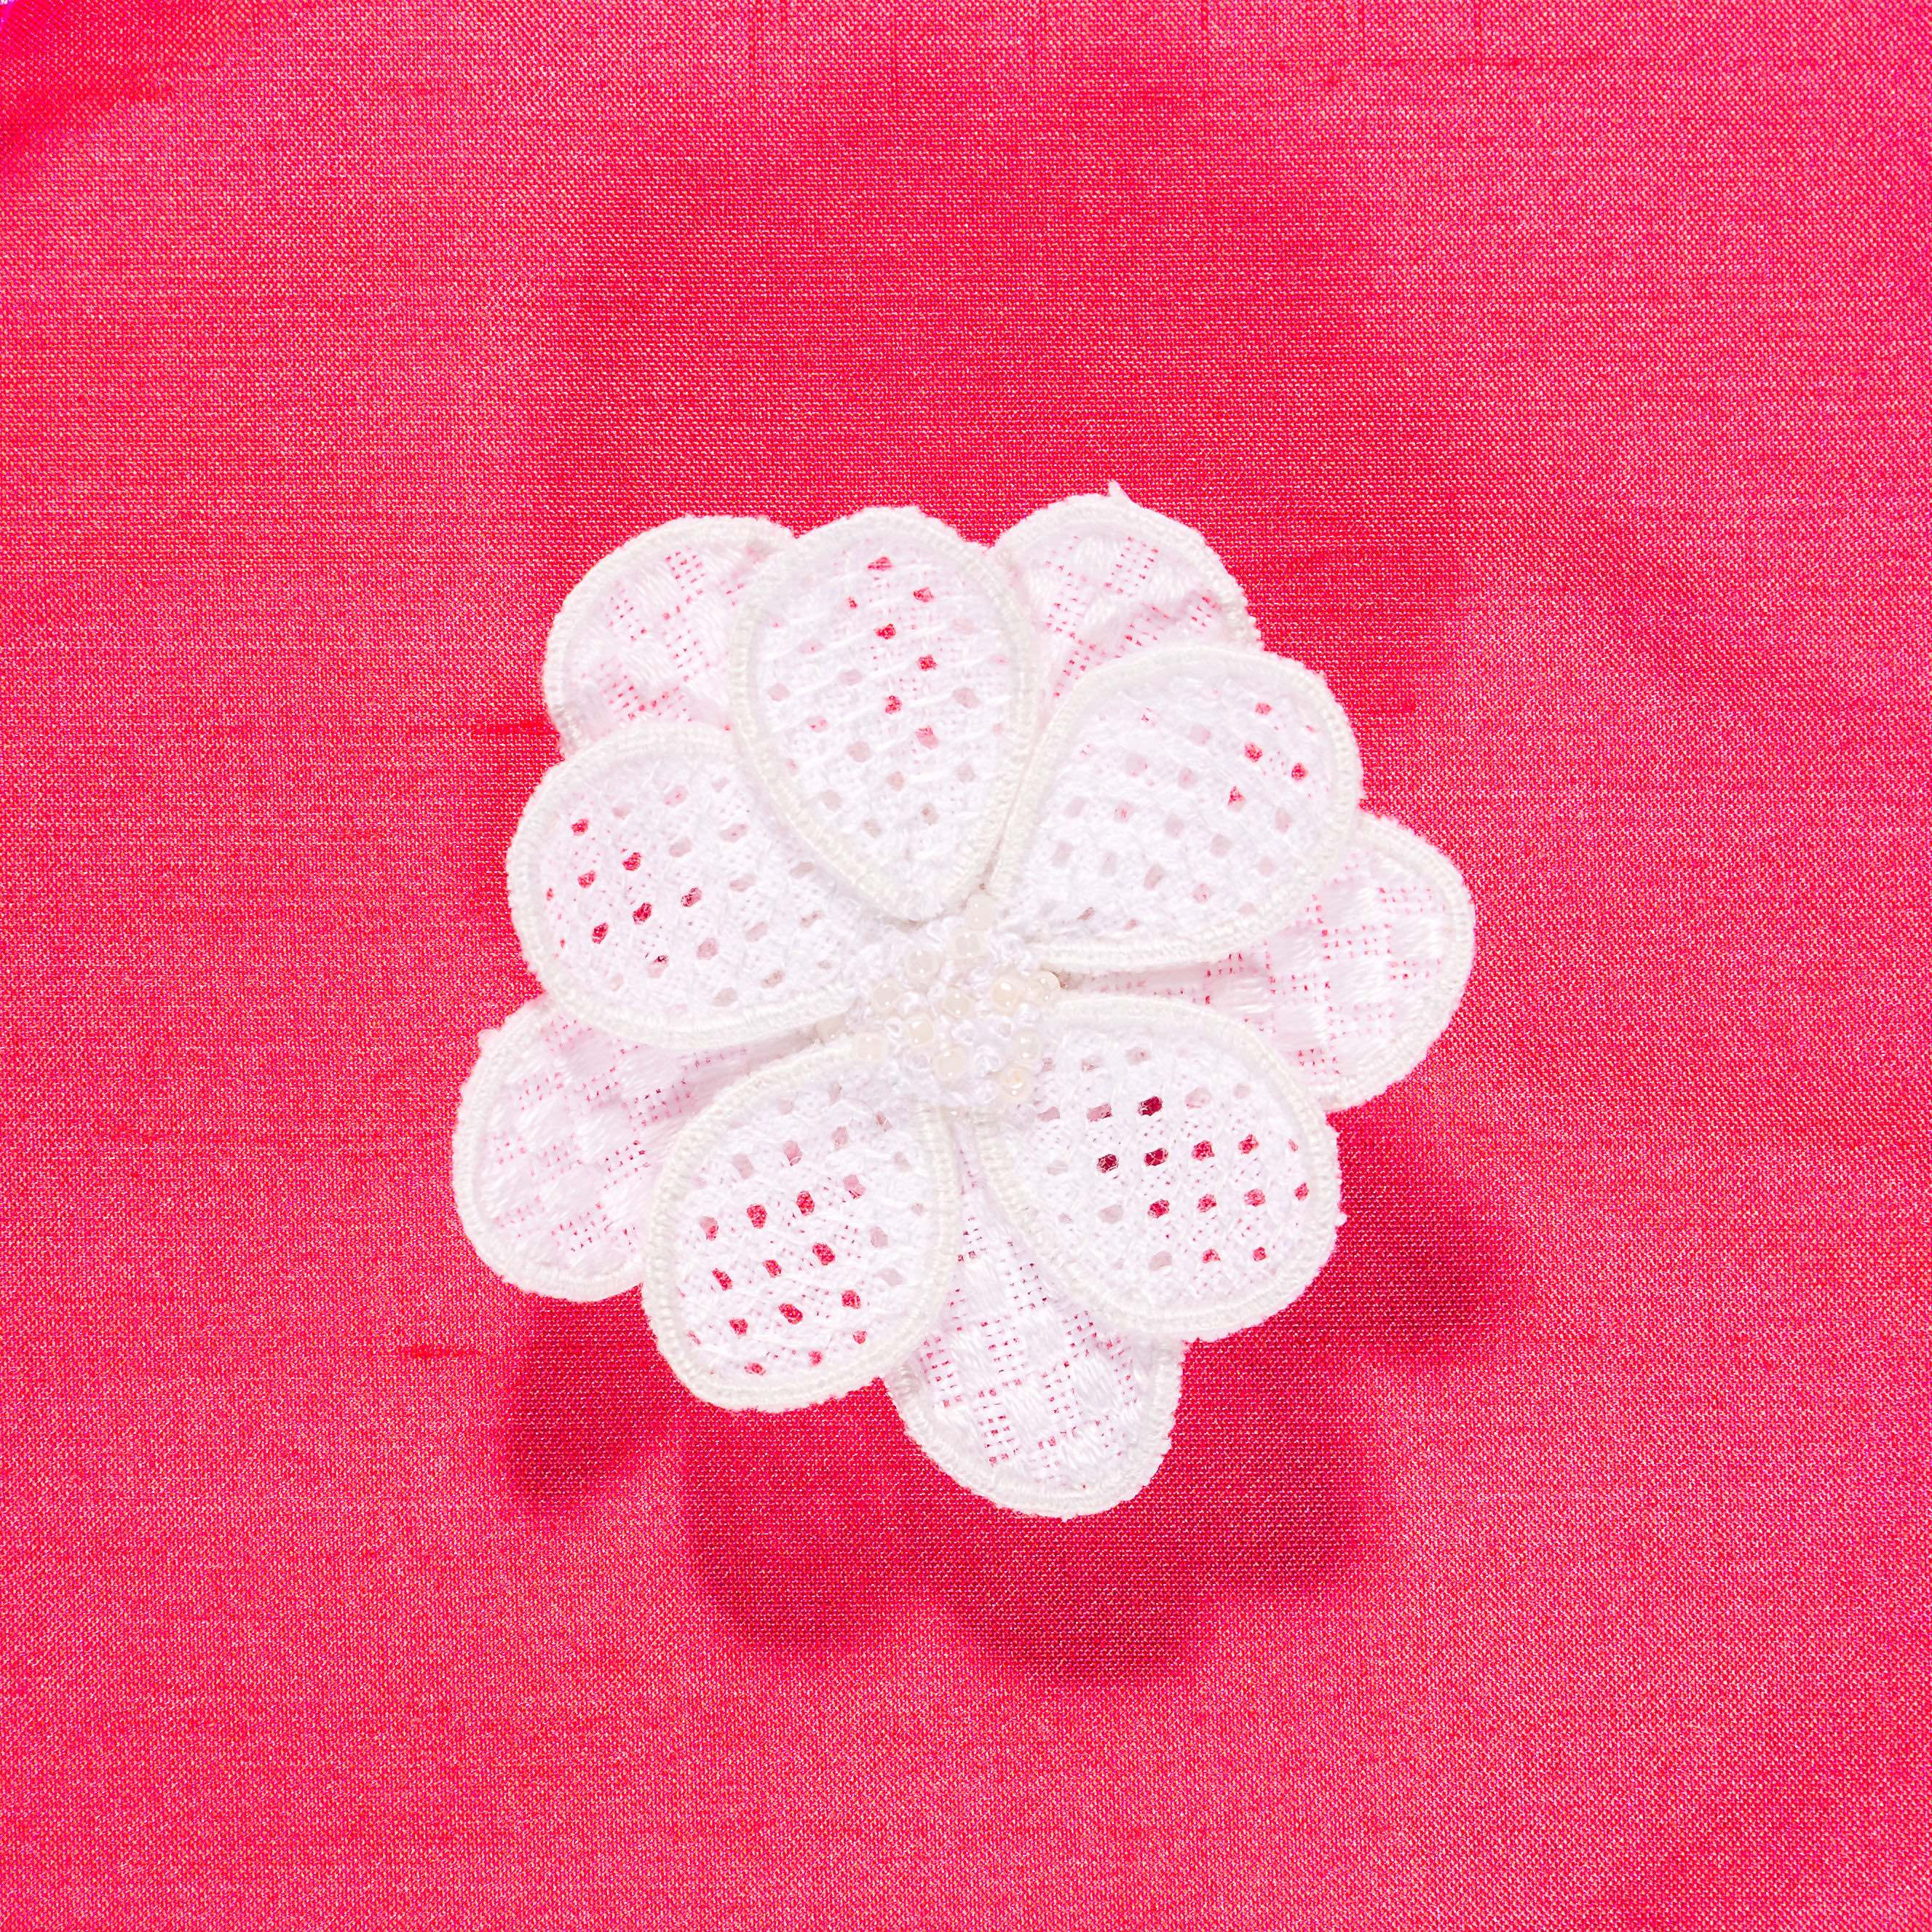 Whitework and stumpwork flower brooch embroidery kit